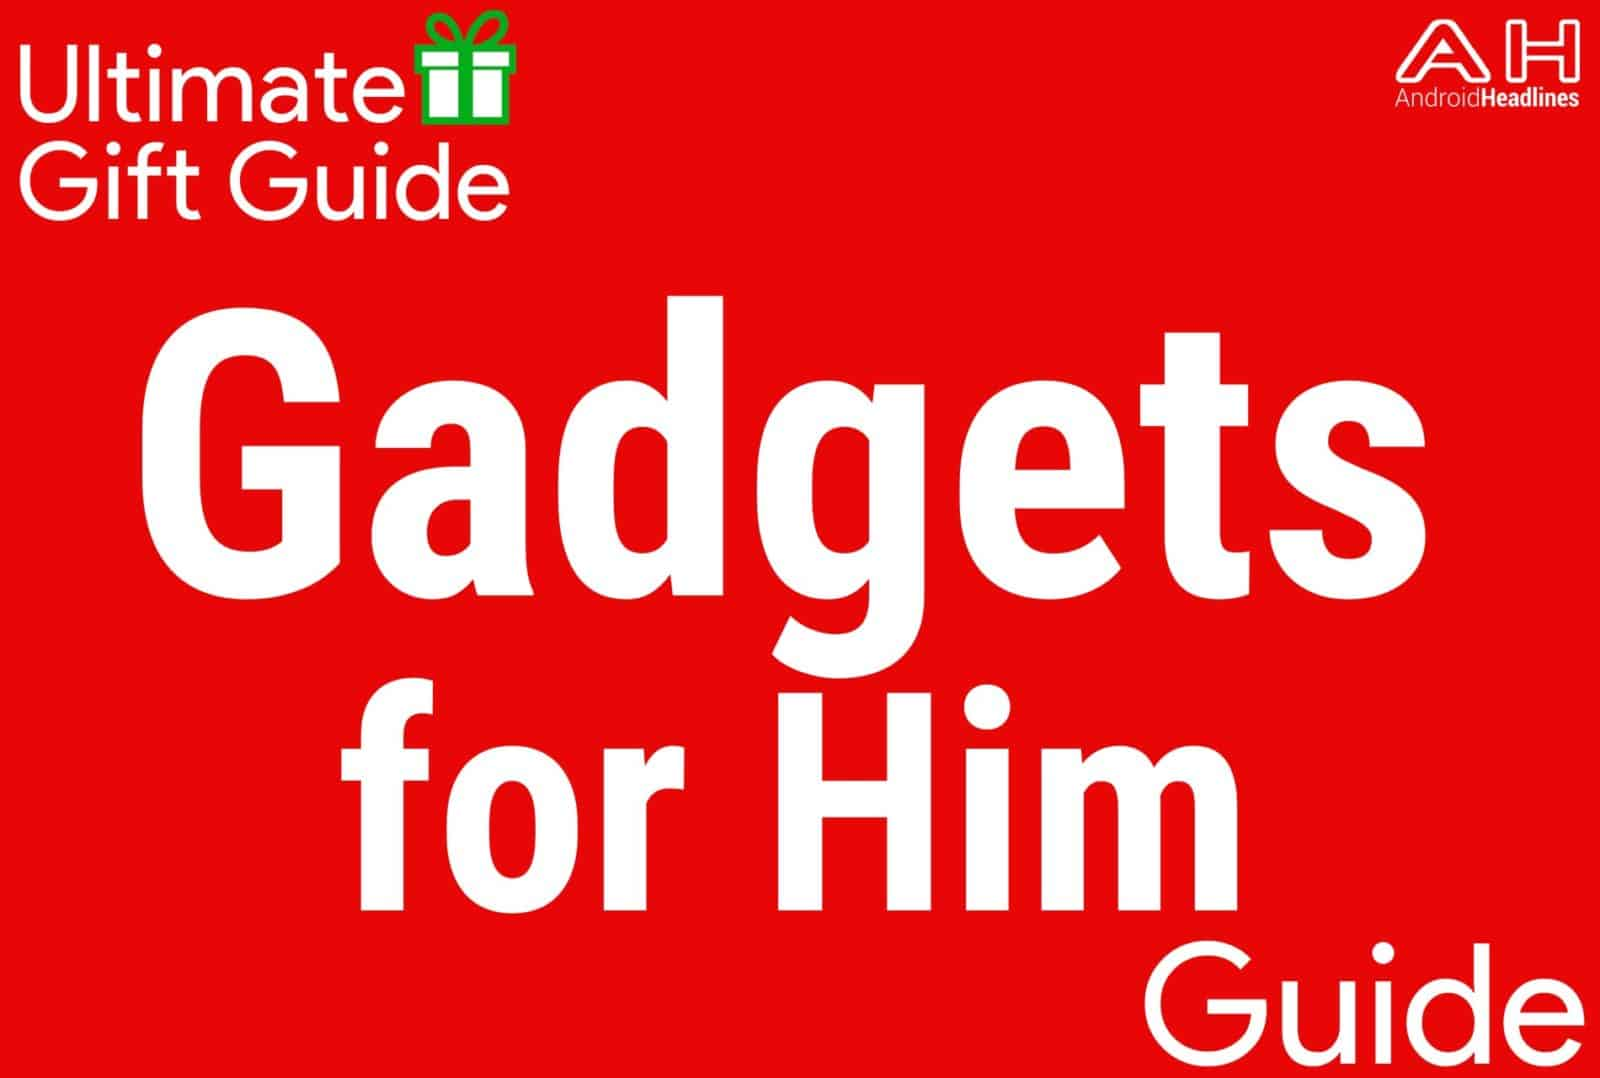 Gadgets for Him - Gift Guide 2015